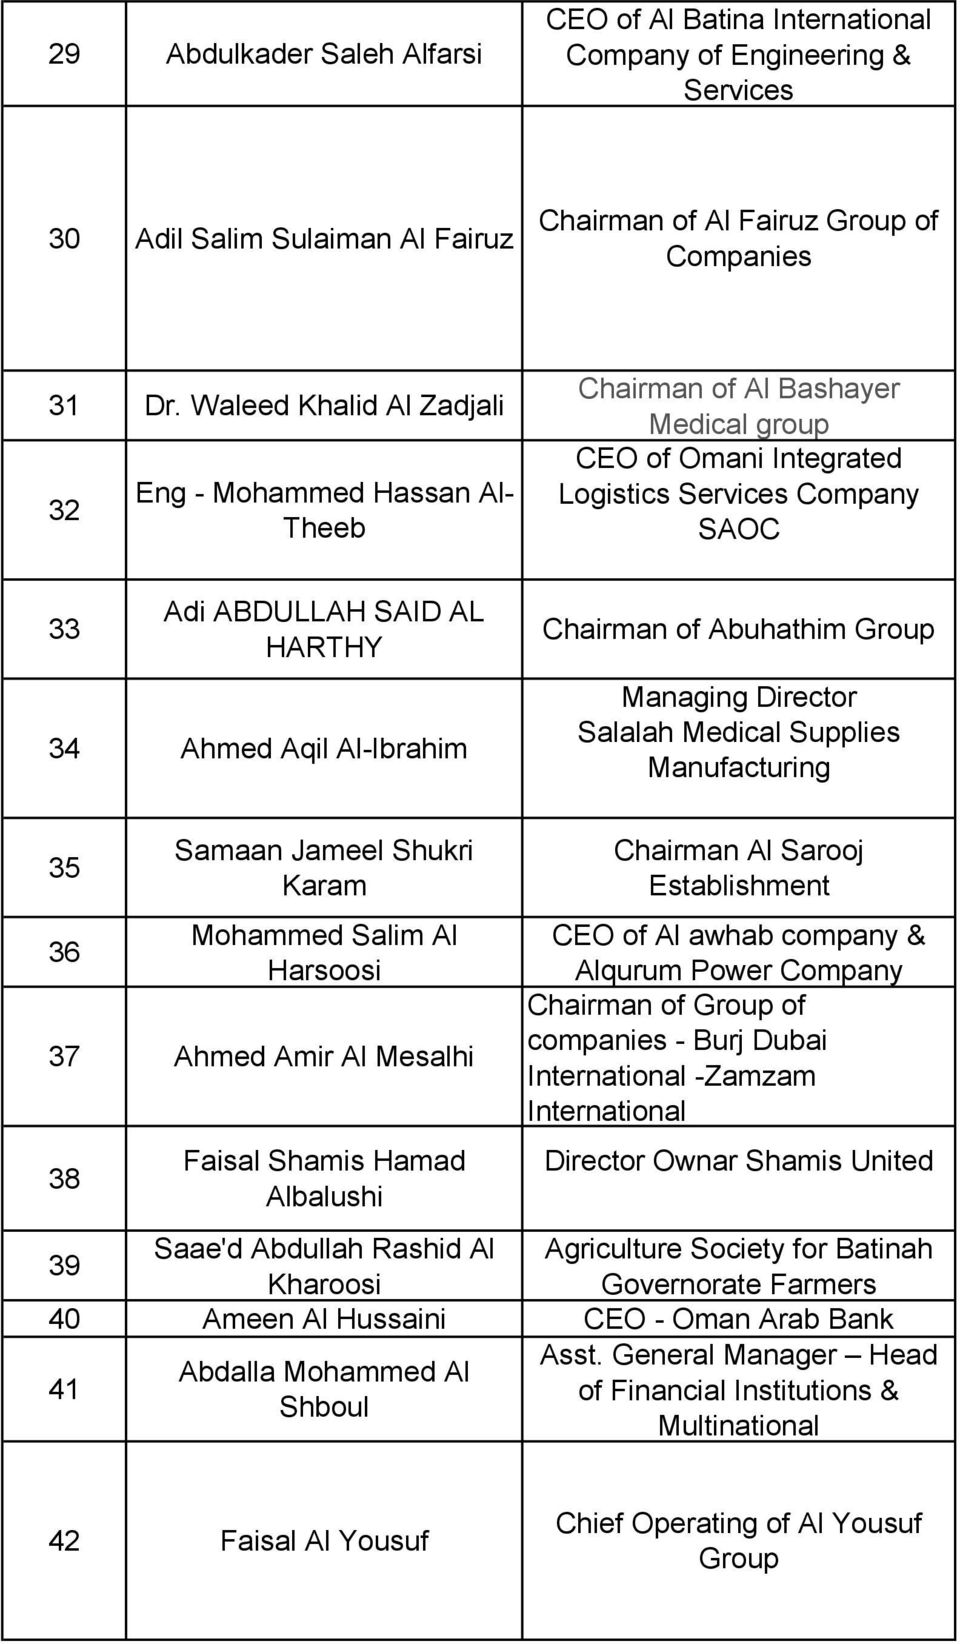 Company SAOC Chairman of Abuhathim Group Managing Director Salalah Medical Supplies Manufacturing 35 36 Samaan Jameel Shukri Karam Mohammed Salim Al Harsoosi 37 Ahmed Amir Al Mesalhi 38 Faisal Shamis